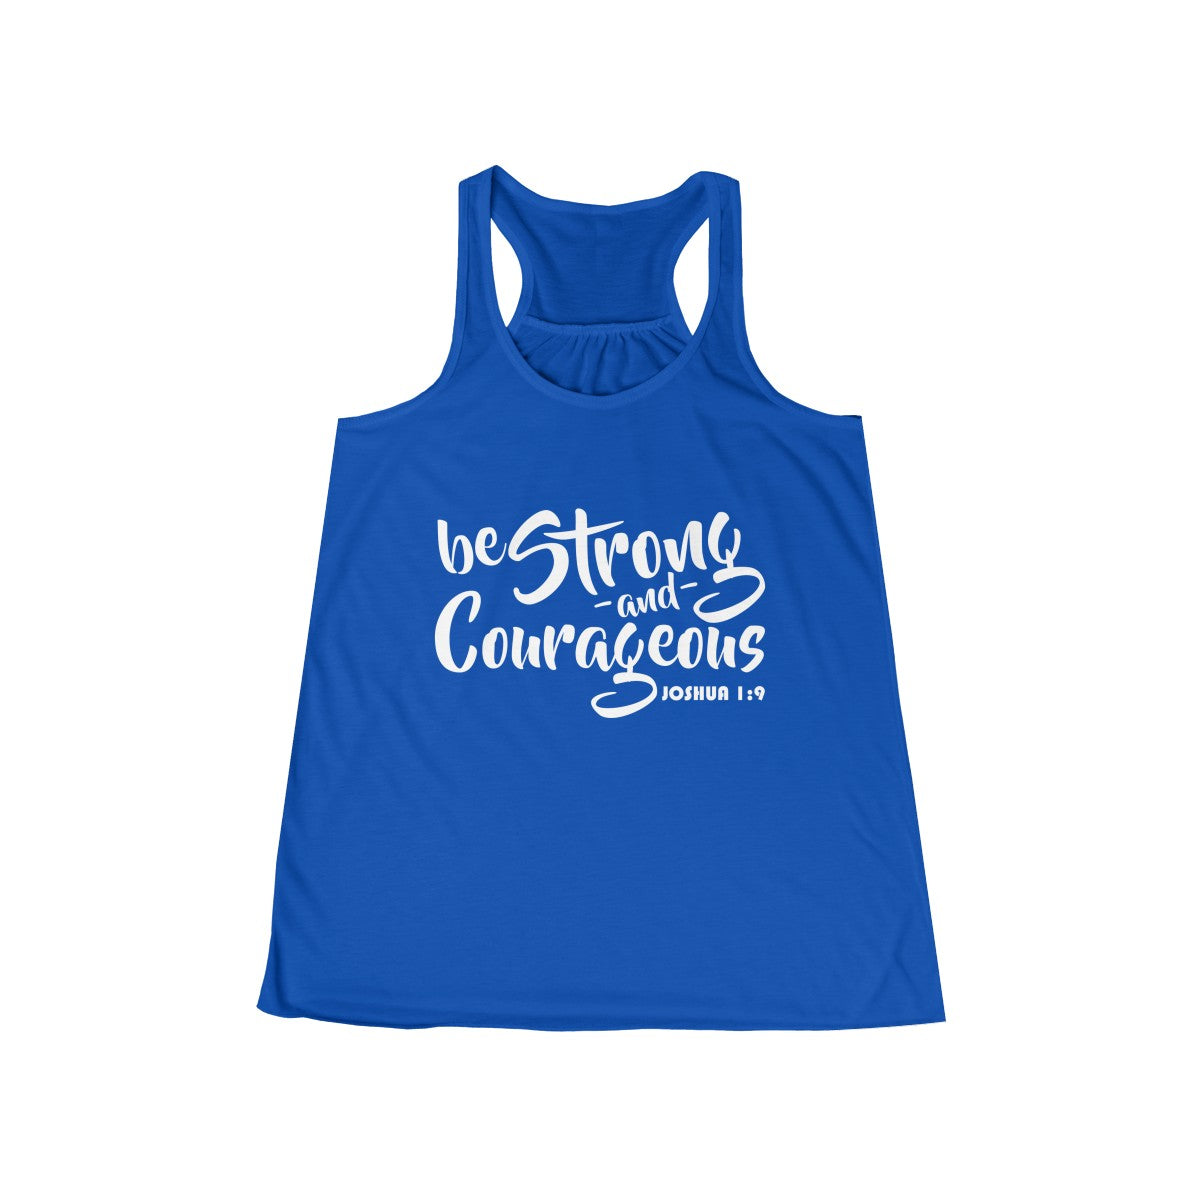 Be Strong & Courageous Joshua 1:9 Christian Flowy Racerback Tank